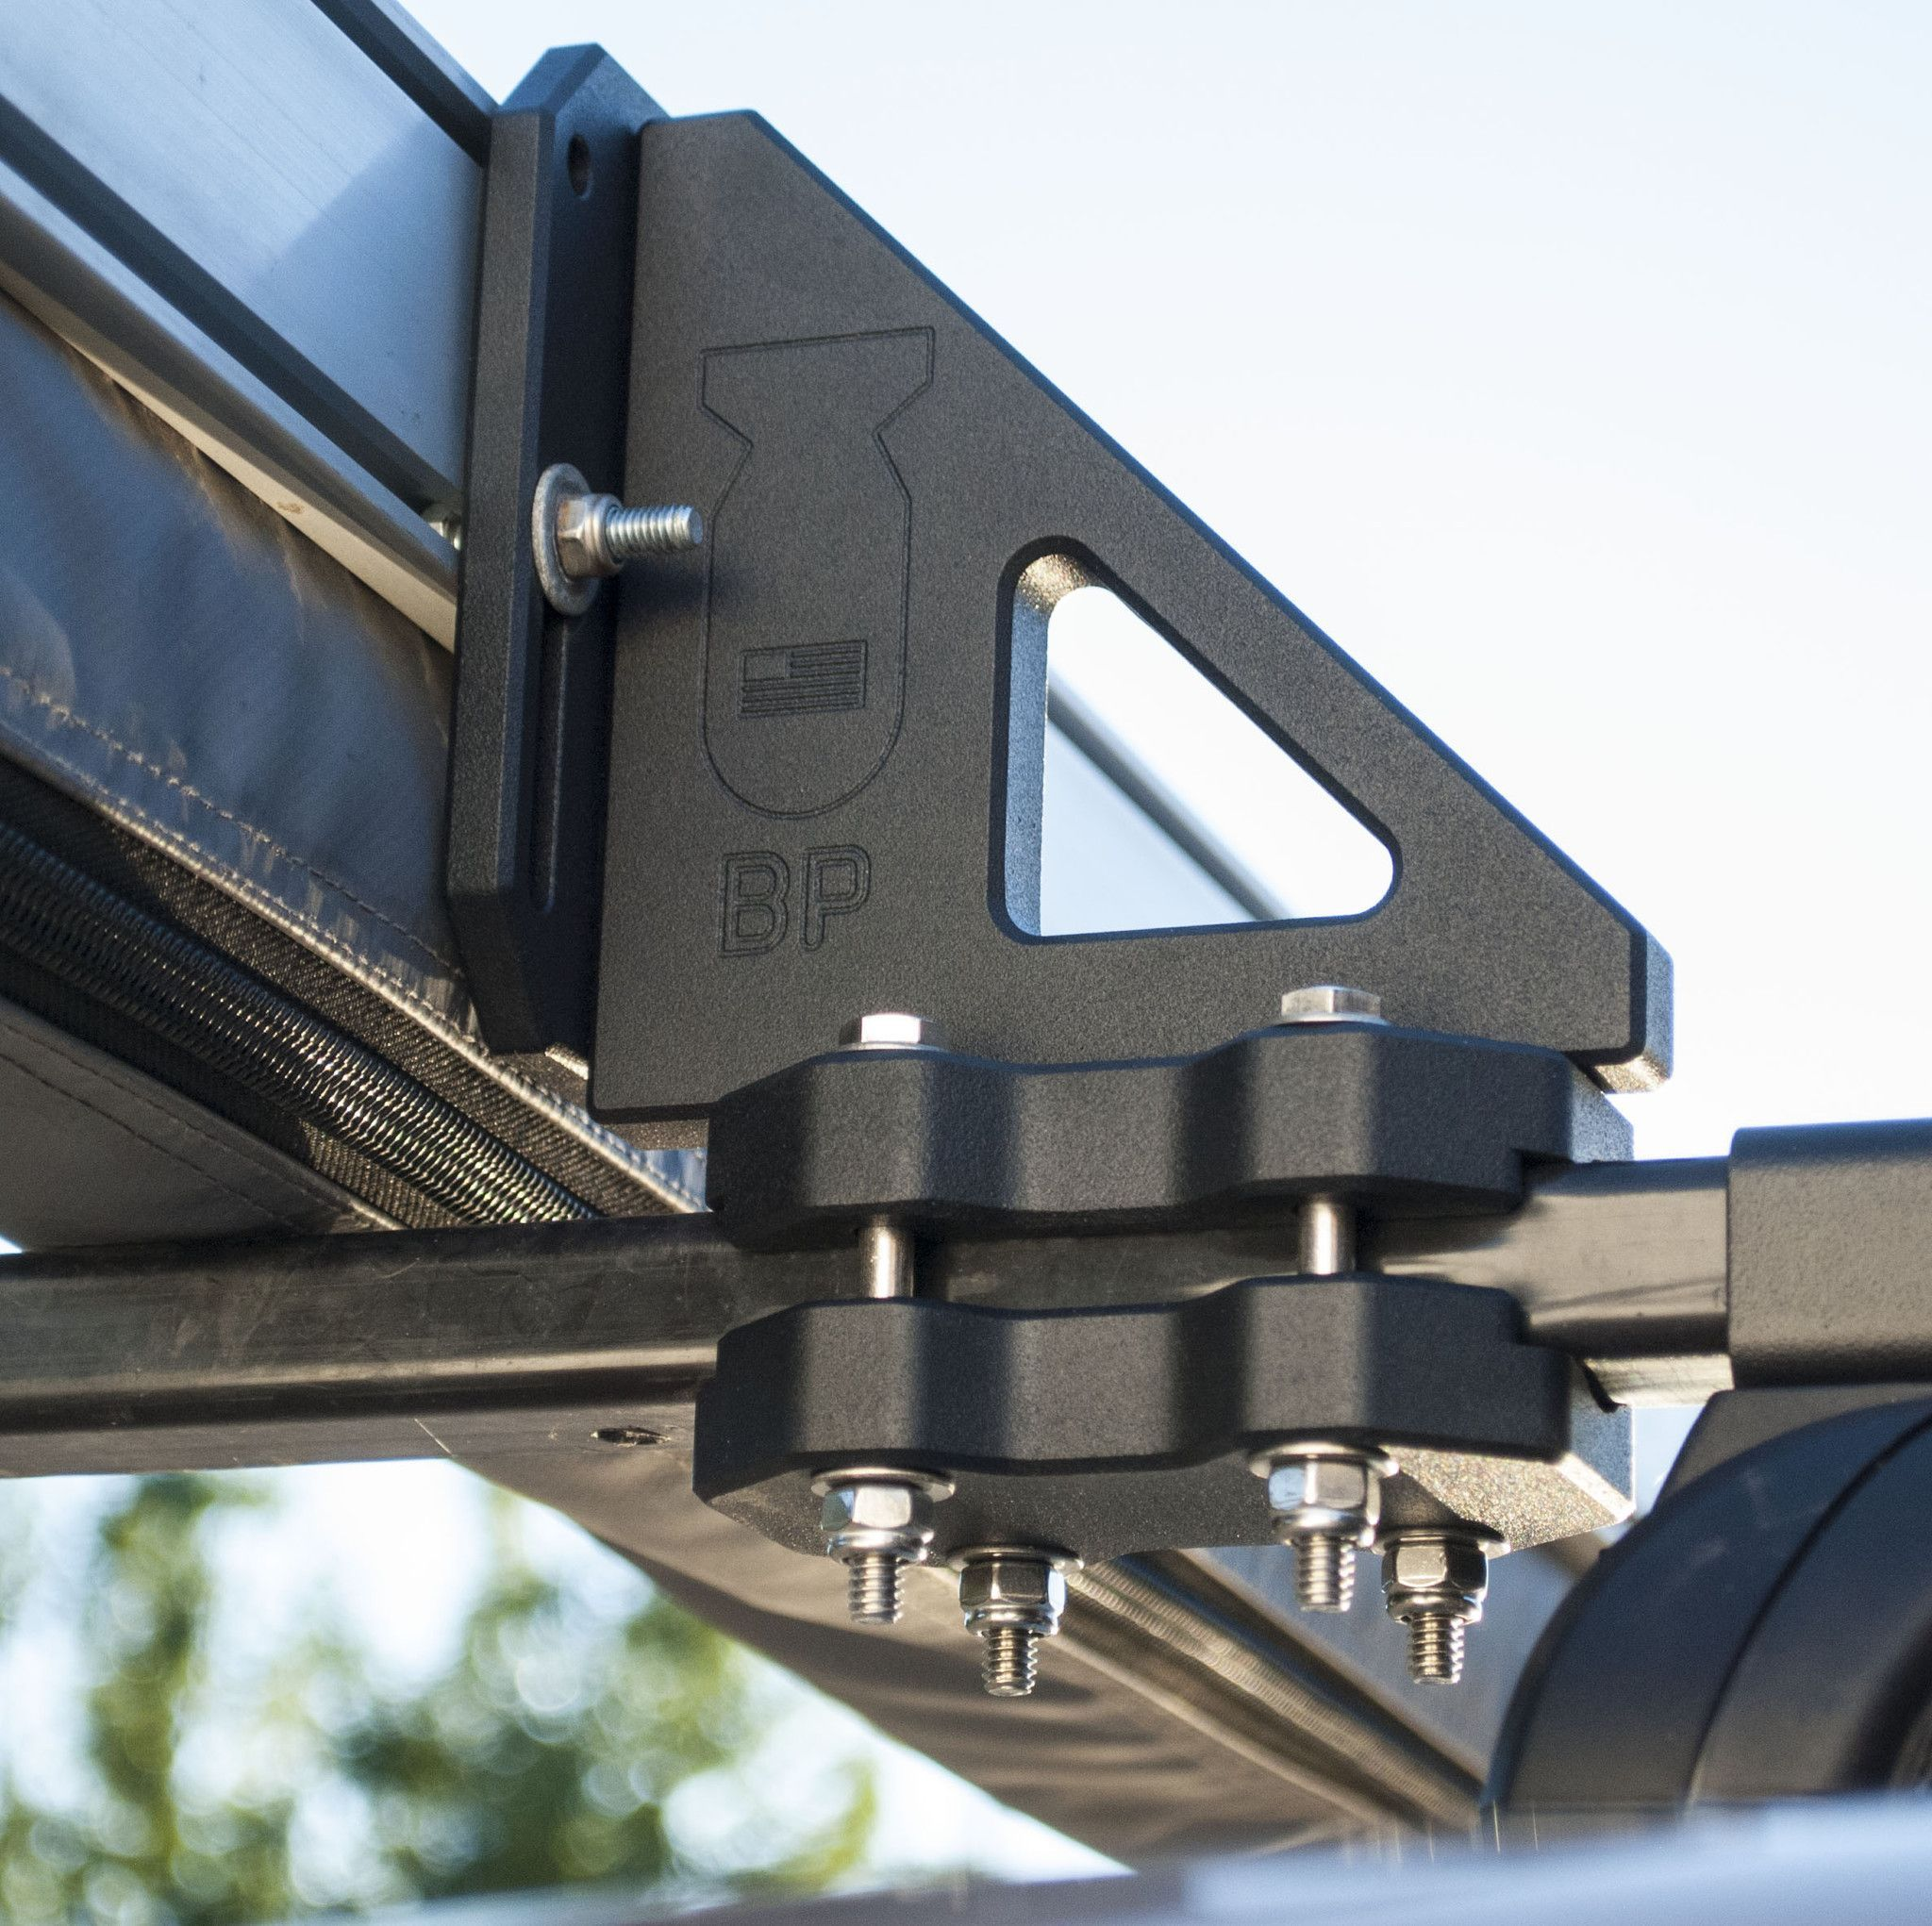 Awn Lock Roof Rack Roofing Equipment Towing Vehicle